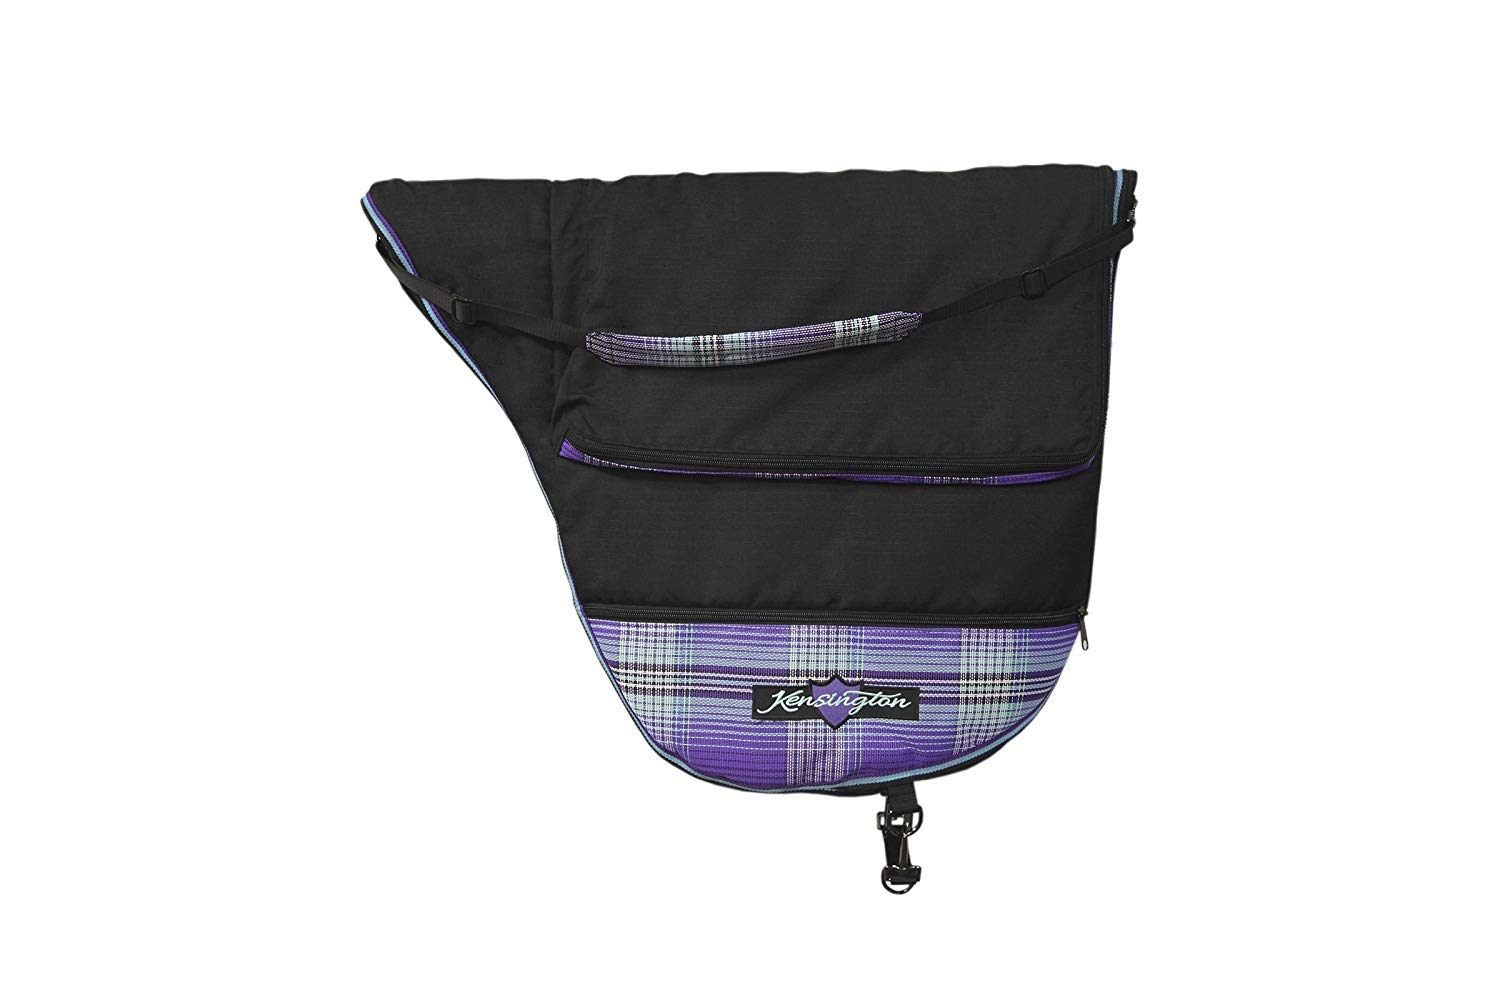 Kensington Dressage Saddle Carry Bag - Padded for Additional Protection - Features Top Compartment and Lower Storage Pockets - Padded Shoulder Pad for Carrying Comfort